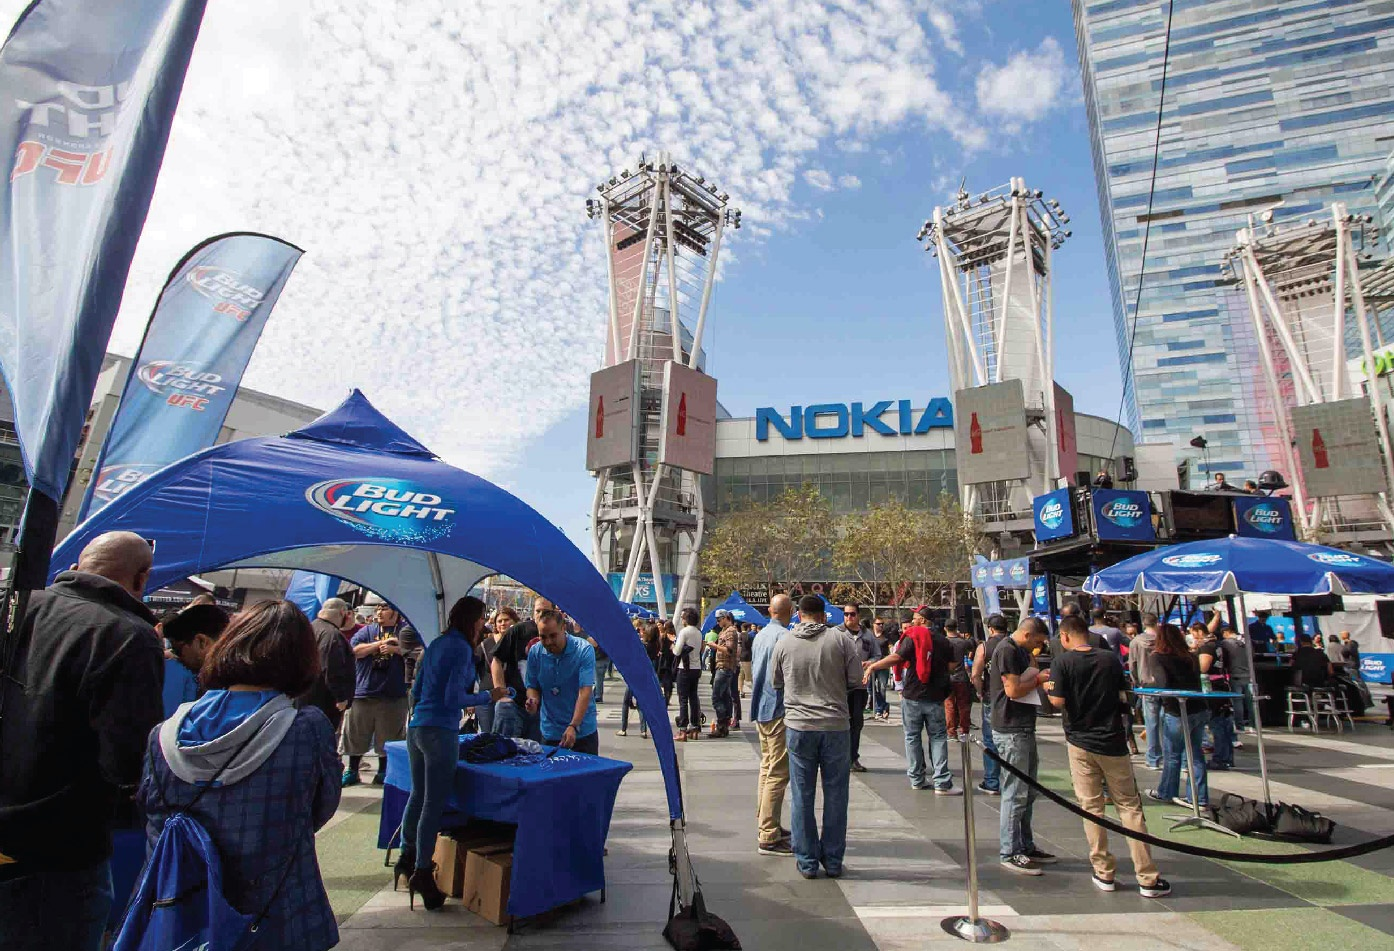 Bud Light Printed Arch Frame Tent at Nokia Theater, LA Live, UFC Event